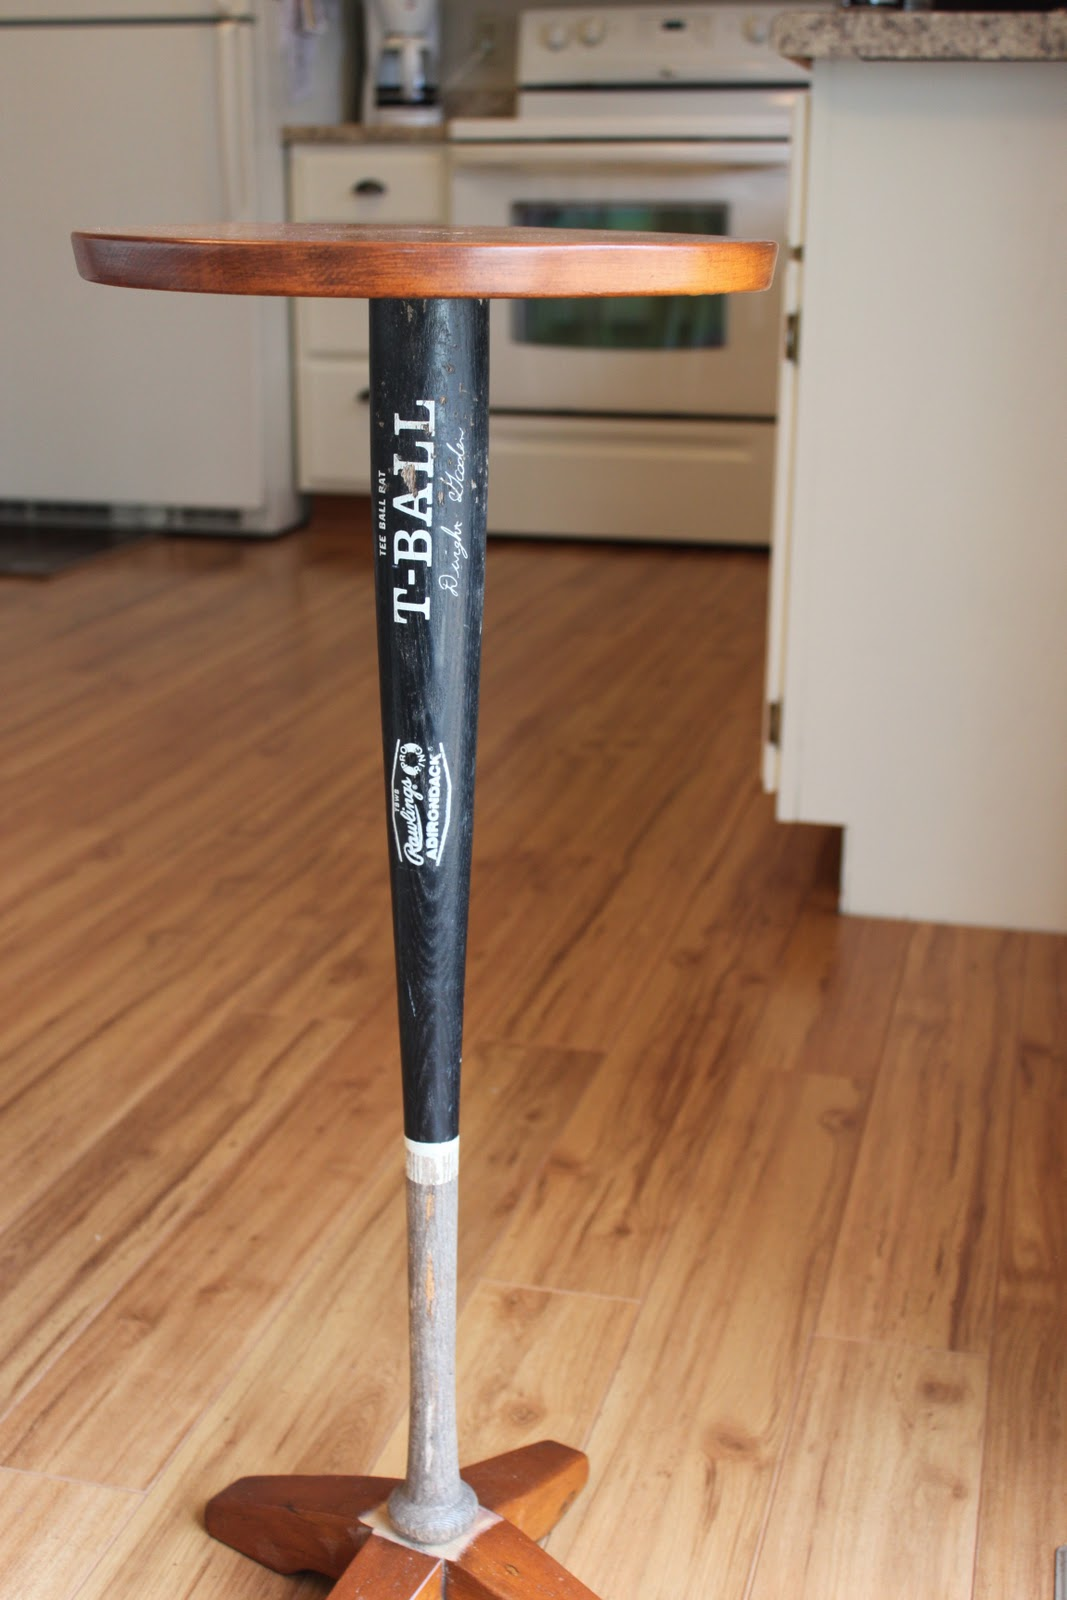 I Had Him Replace The Table Leg With My New Old Bat